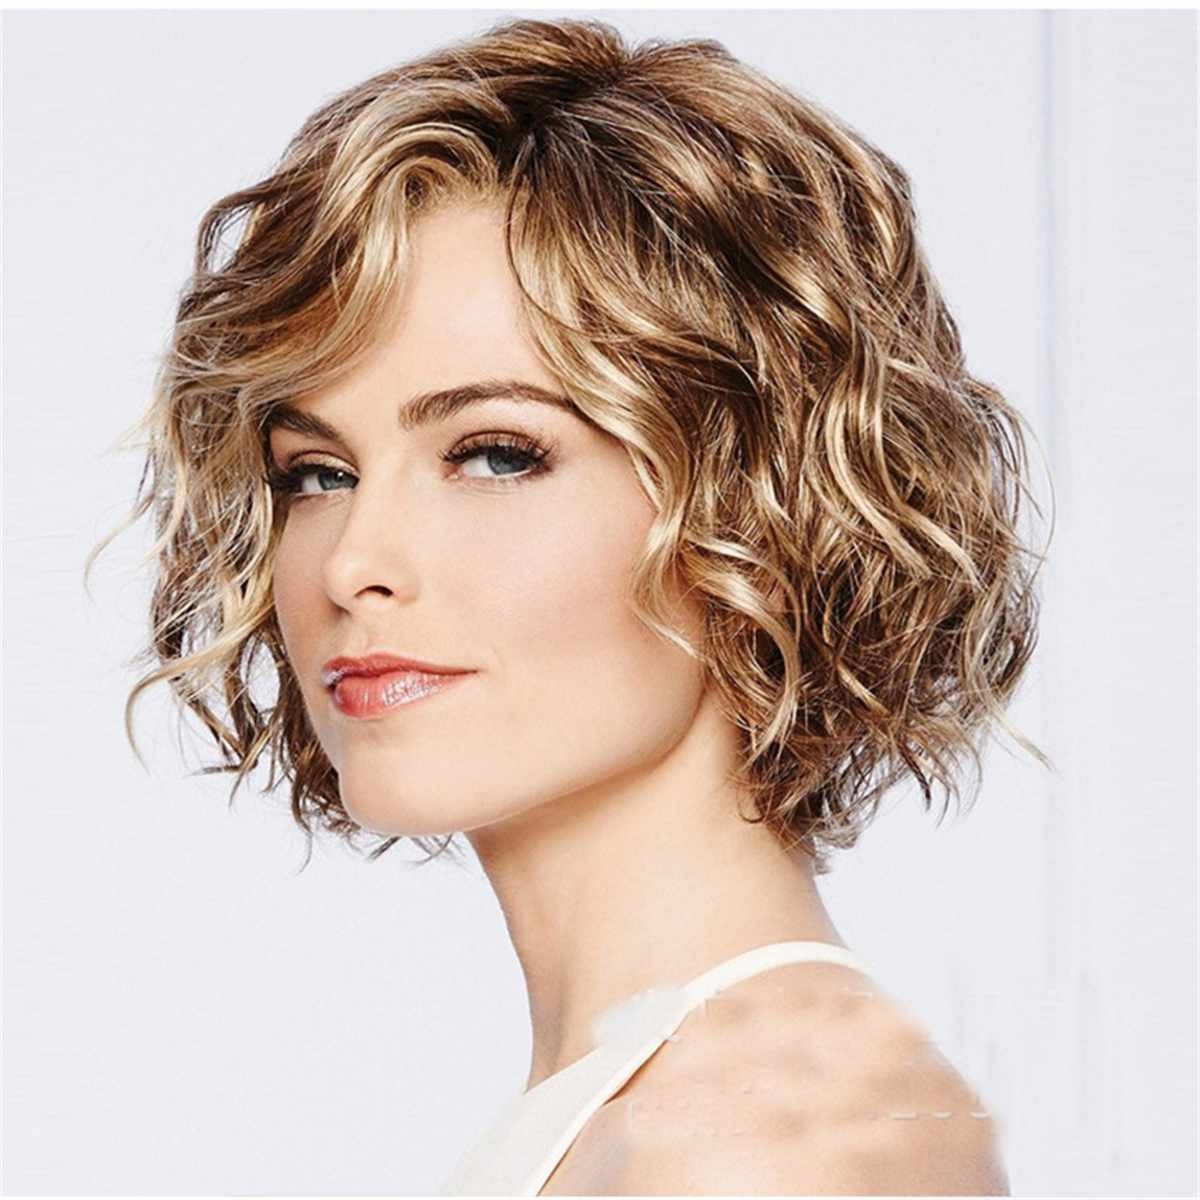 Women's Fashion Wig Short Haircut Blonde Wigs Natural Short Straight Hair Wig With Free Wig Cap Cosplay Halloween Costume